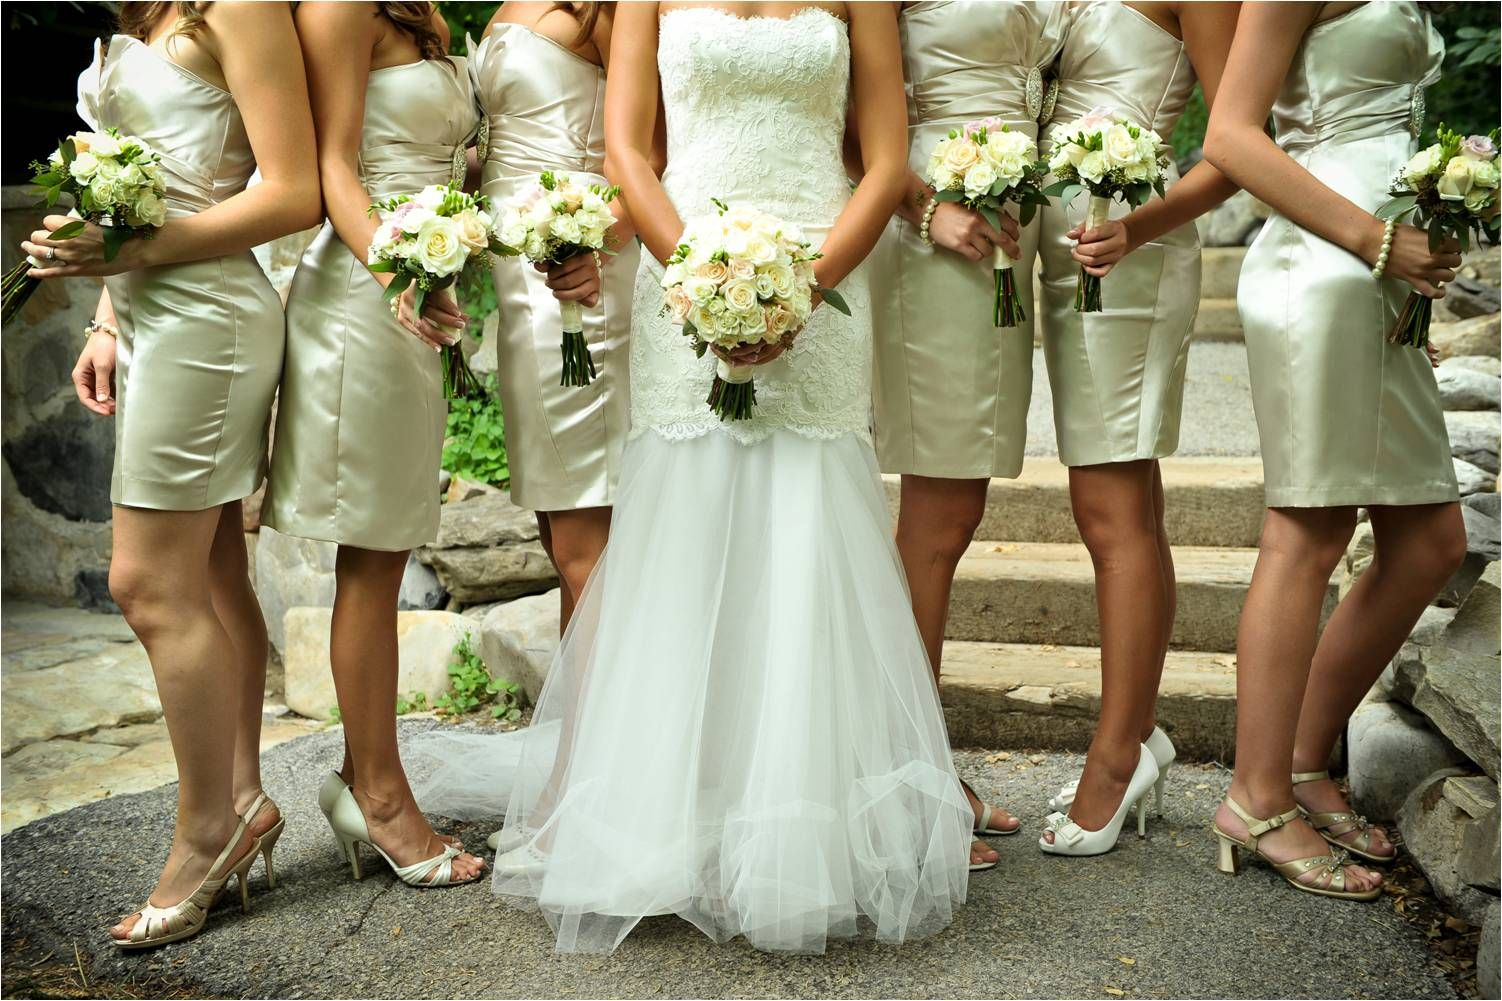 Rustic Outdoor Wedding Utah Ivory Lace Tulle Dress Bride Shows Onewed